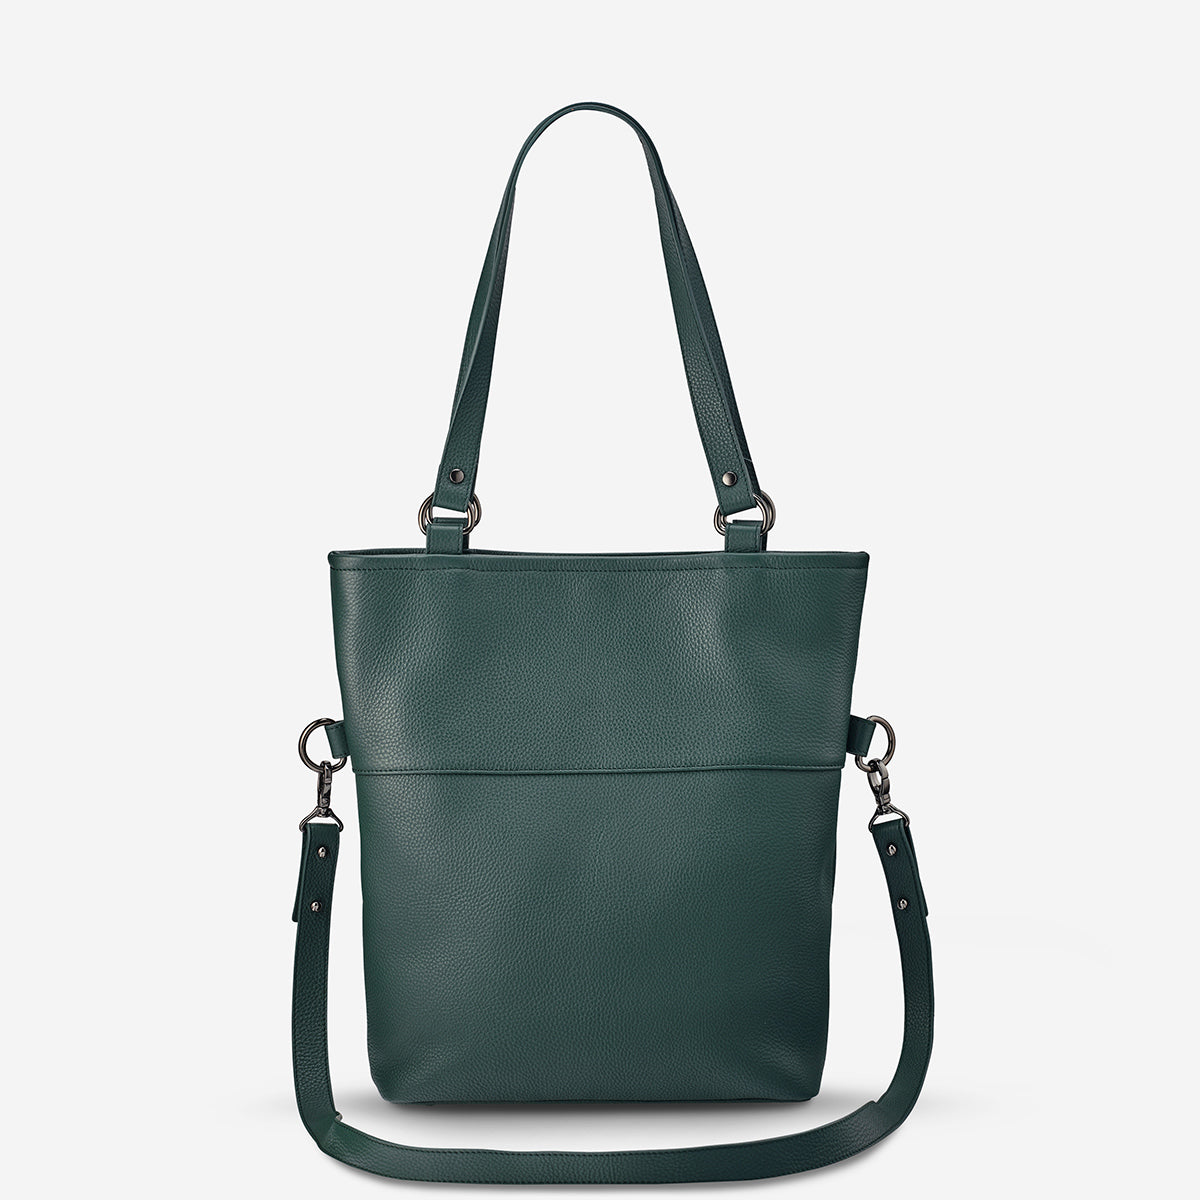 Status Anxiety Wasteland Women's Leather Tote Bag - Green